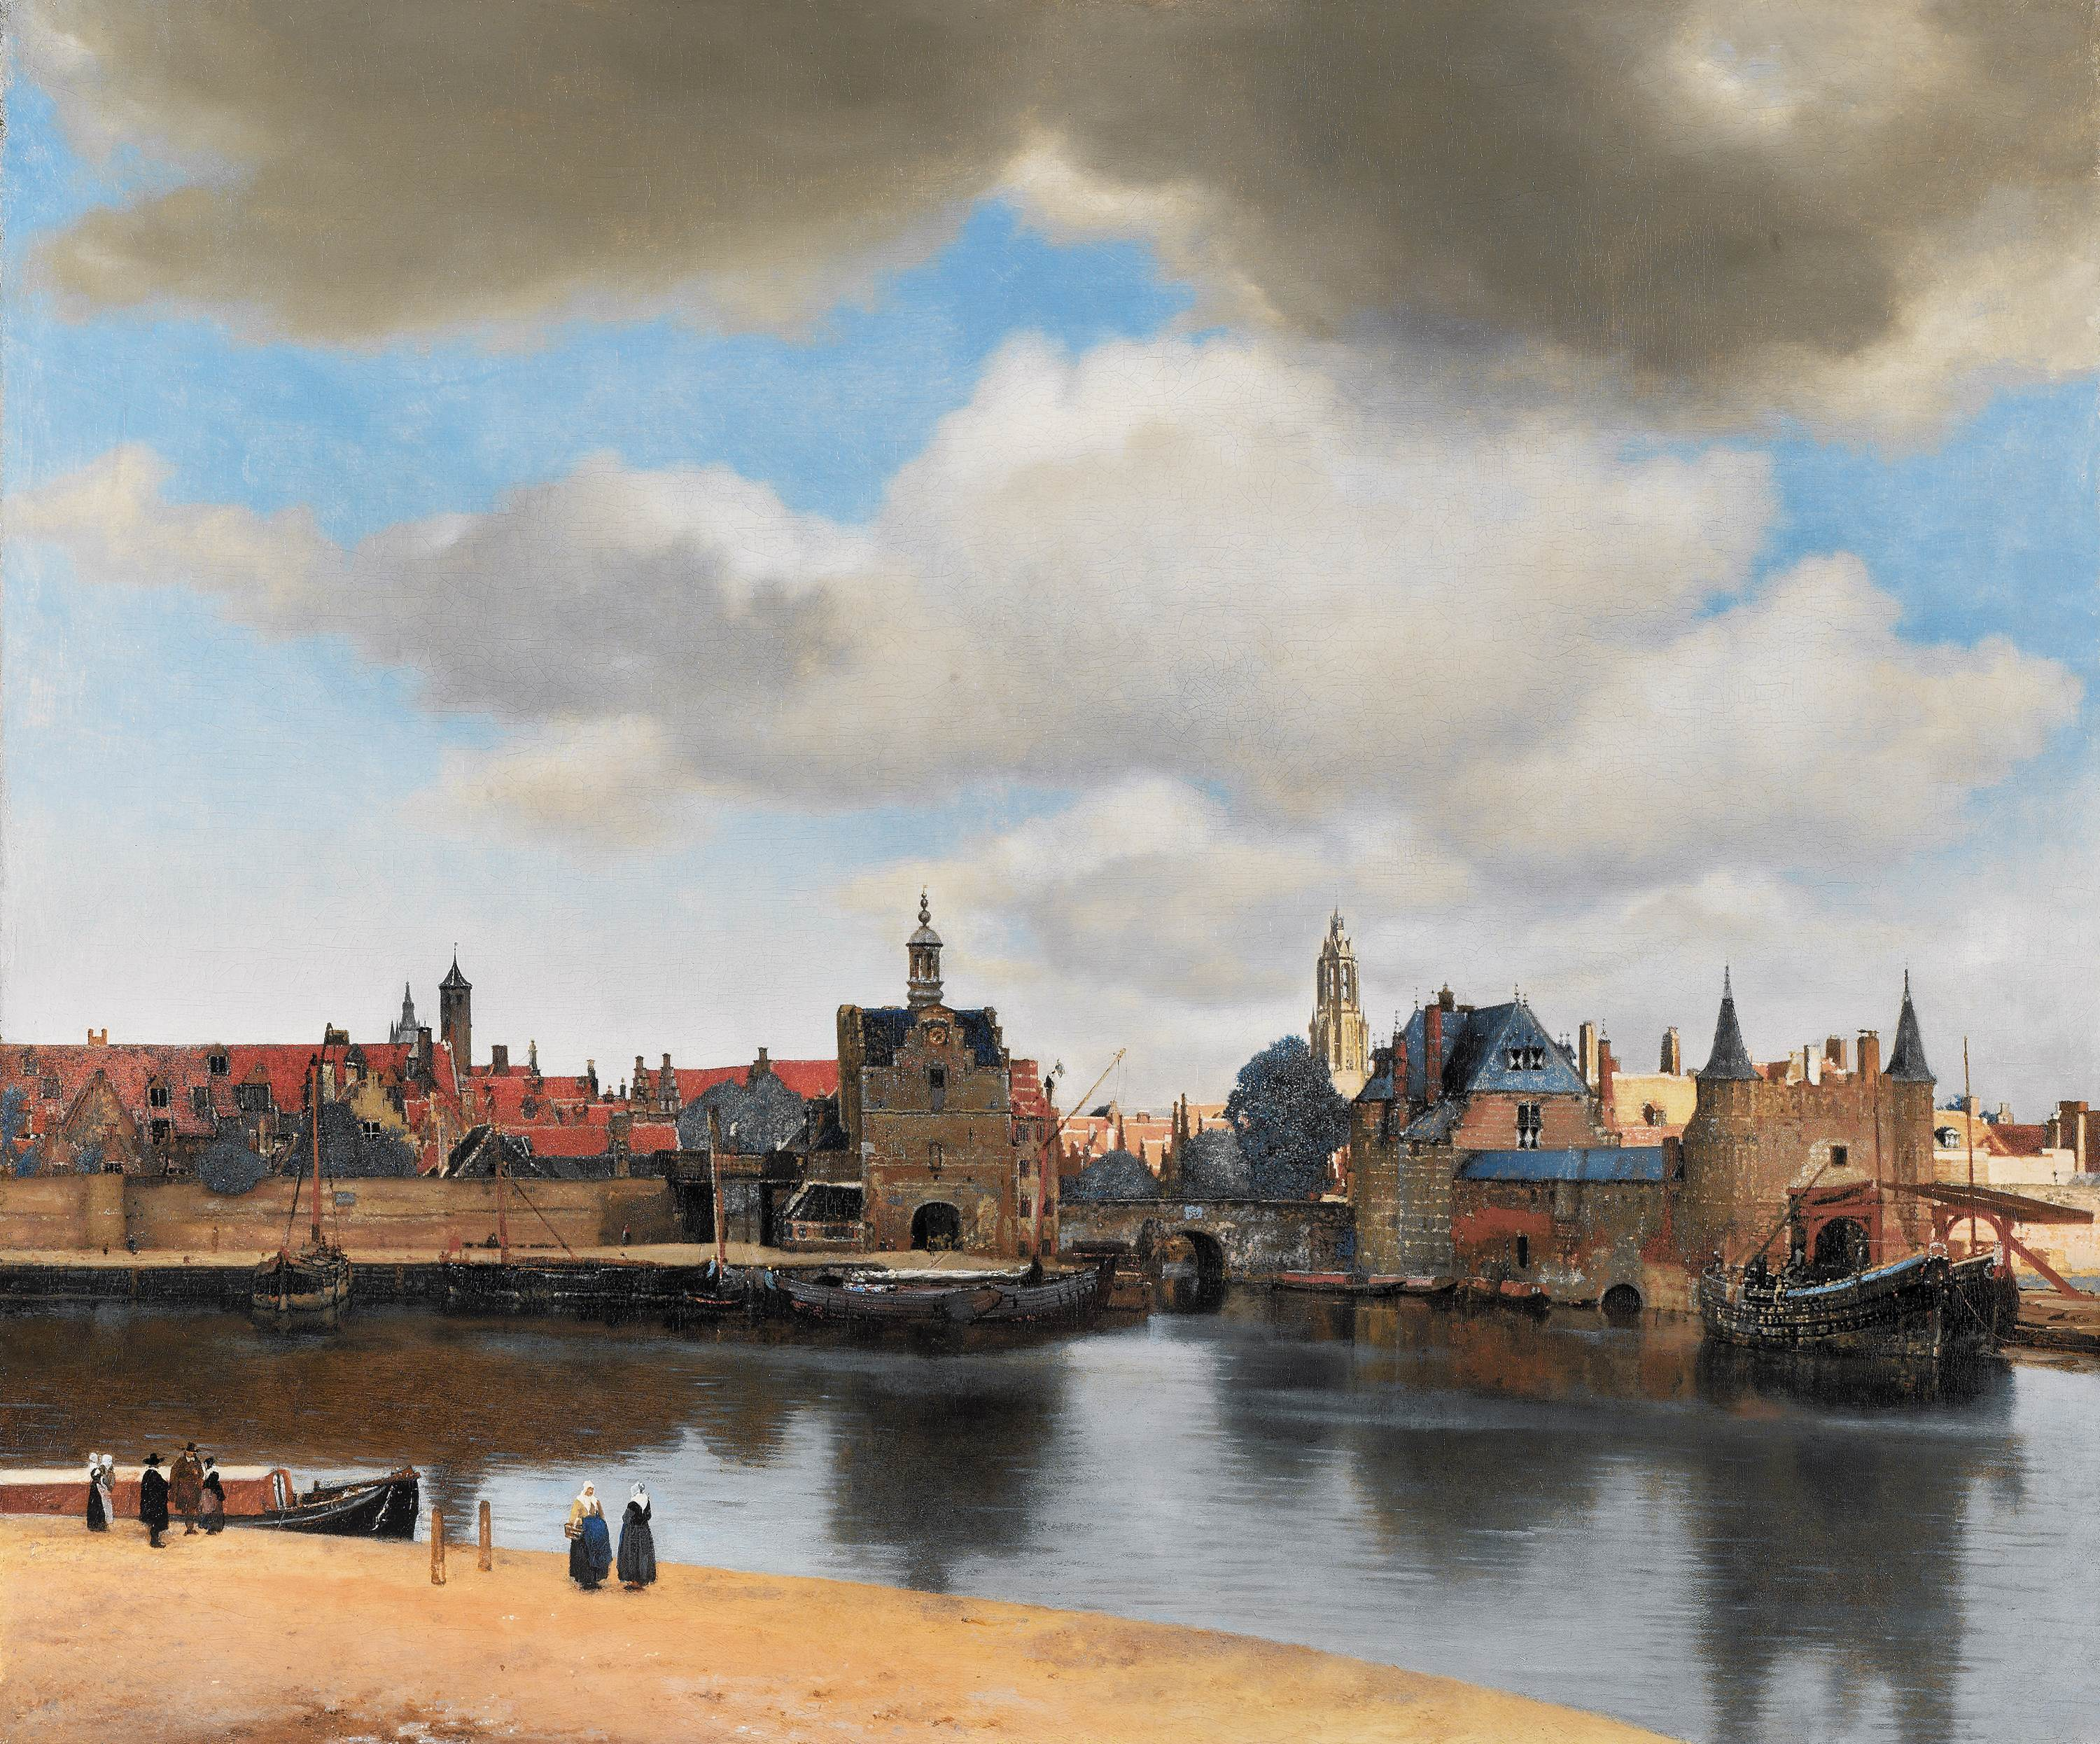 https://upload.wikimedia.org/wikipedia/commons/a/a2/Vermeer-view-of-delft.jpg